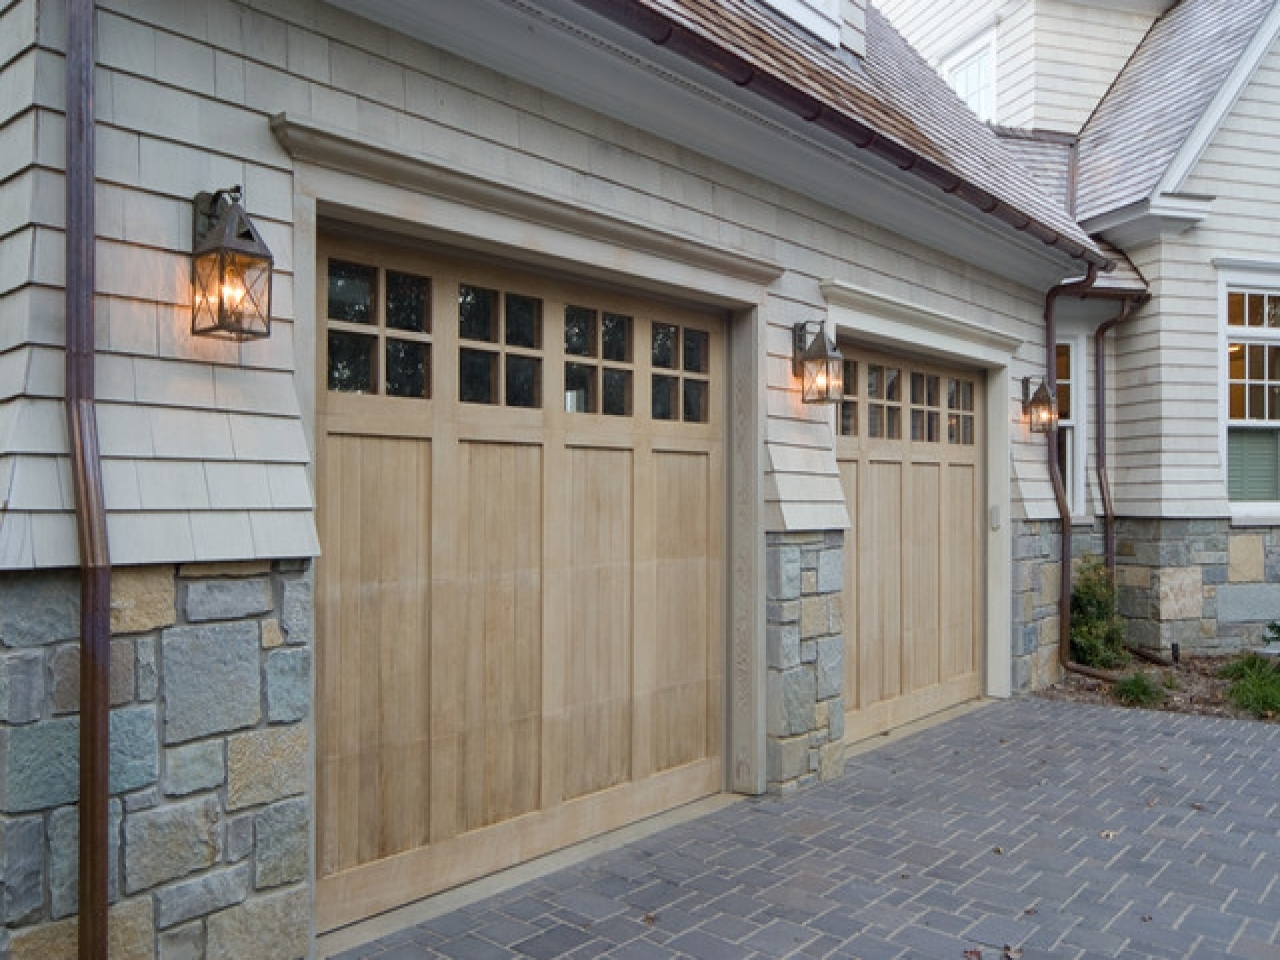 Preferred Outdoor Wall Garage Lights With Outdoor Garage : Garden Wall Lights Led Landscape Lighting Porch (View 3 of 20)